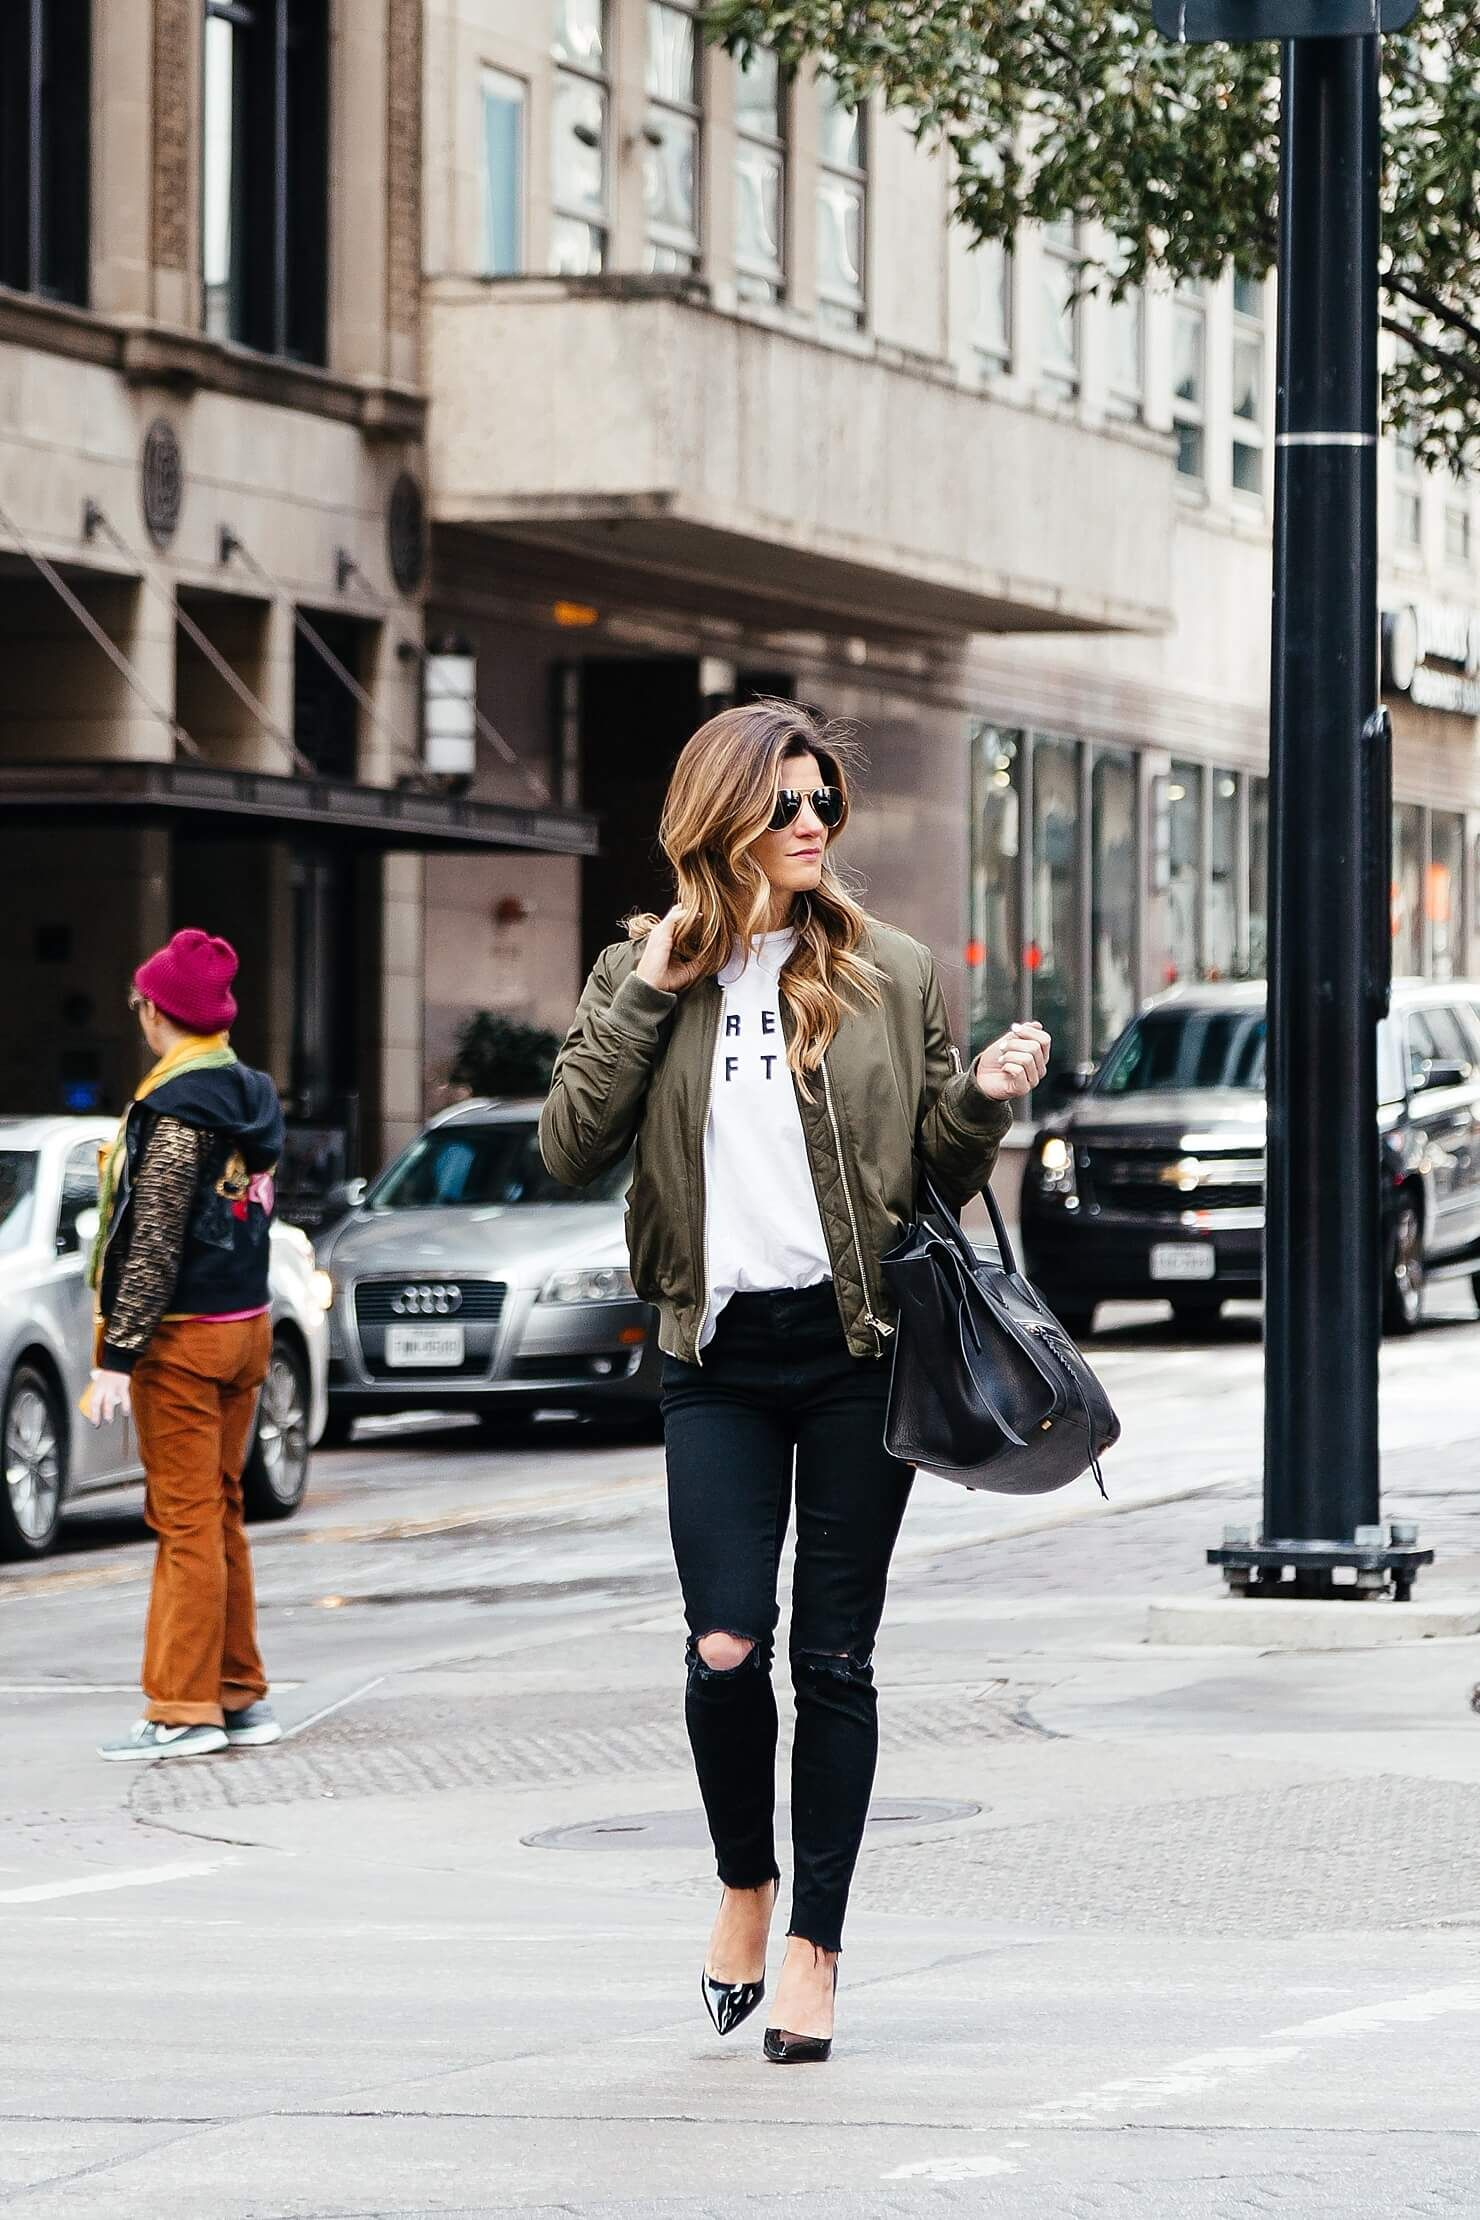 2ce1a4efb3 how to wear a bomber jacket, topshop olive green bomber jacket, sincerely  jules dream